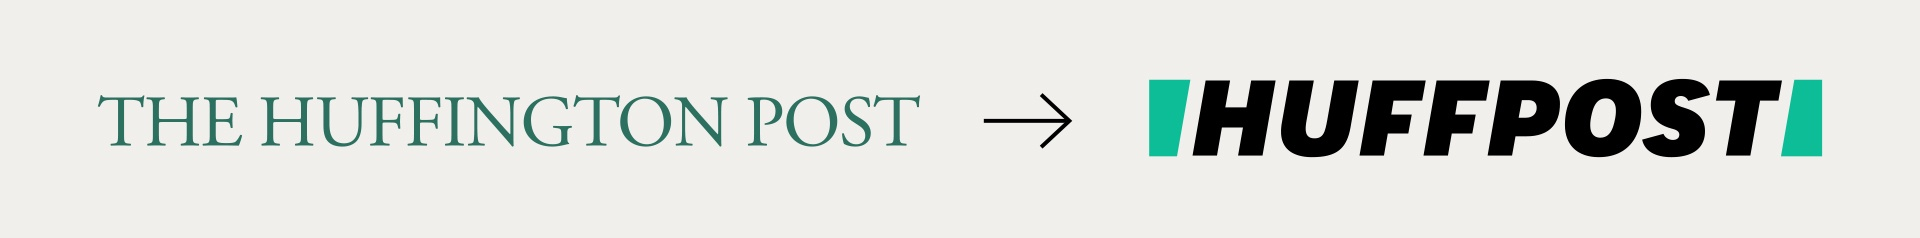 HuffPost logo before after